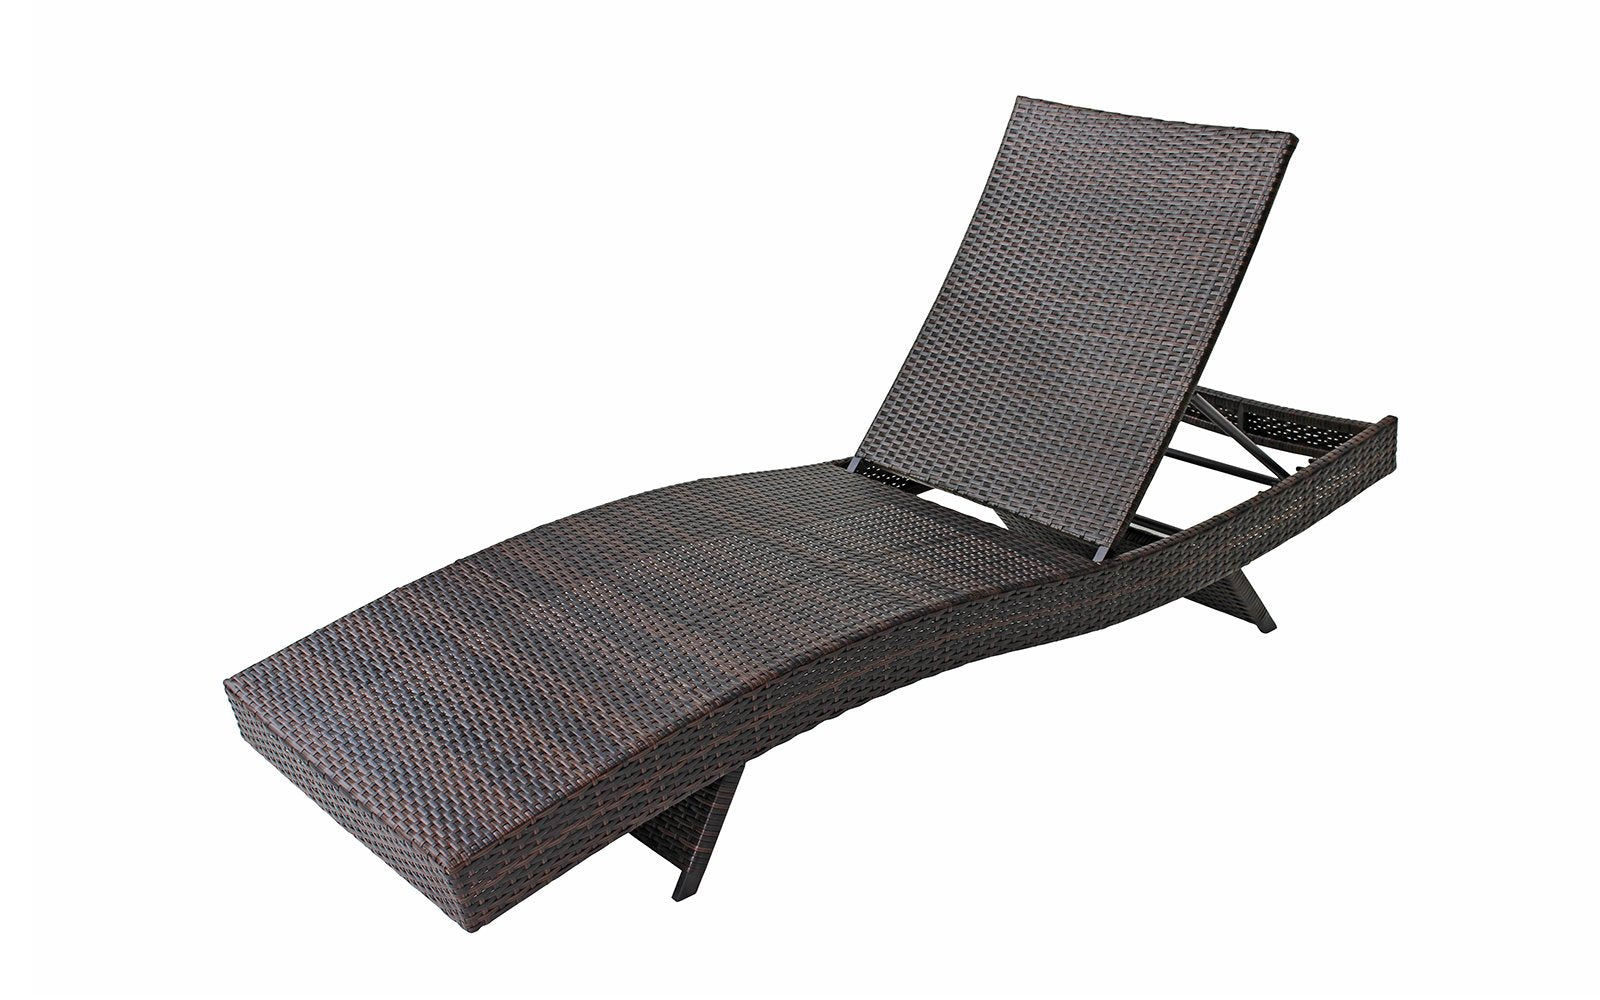 Tremendous Marina Set Of 2 All Weather Modern Outdoor Patio Chaise Spiritservingveterans Wood Chair Design Ideas Spiritservingveteransorg